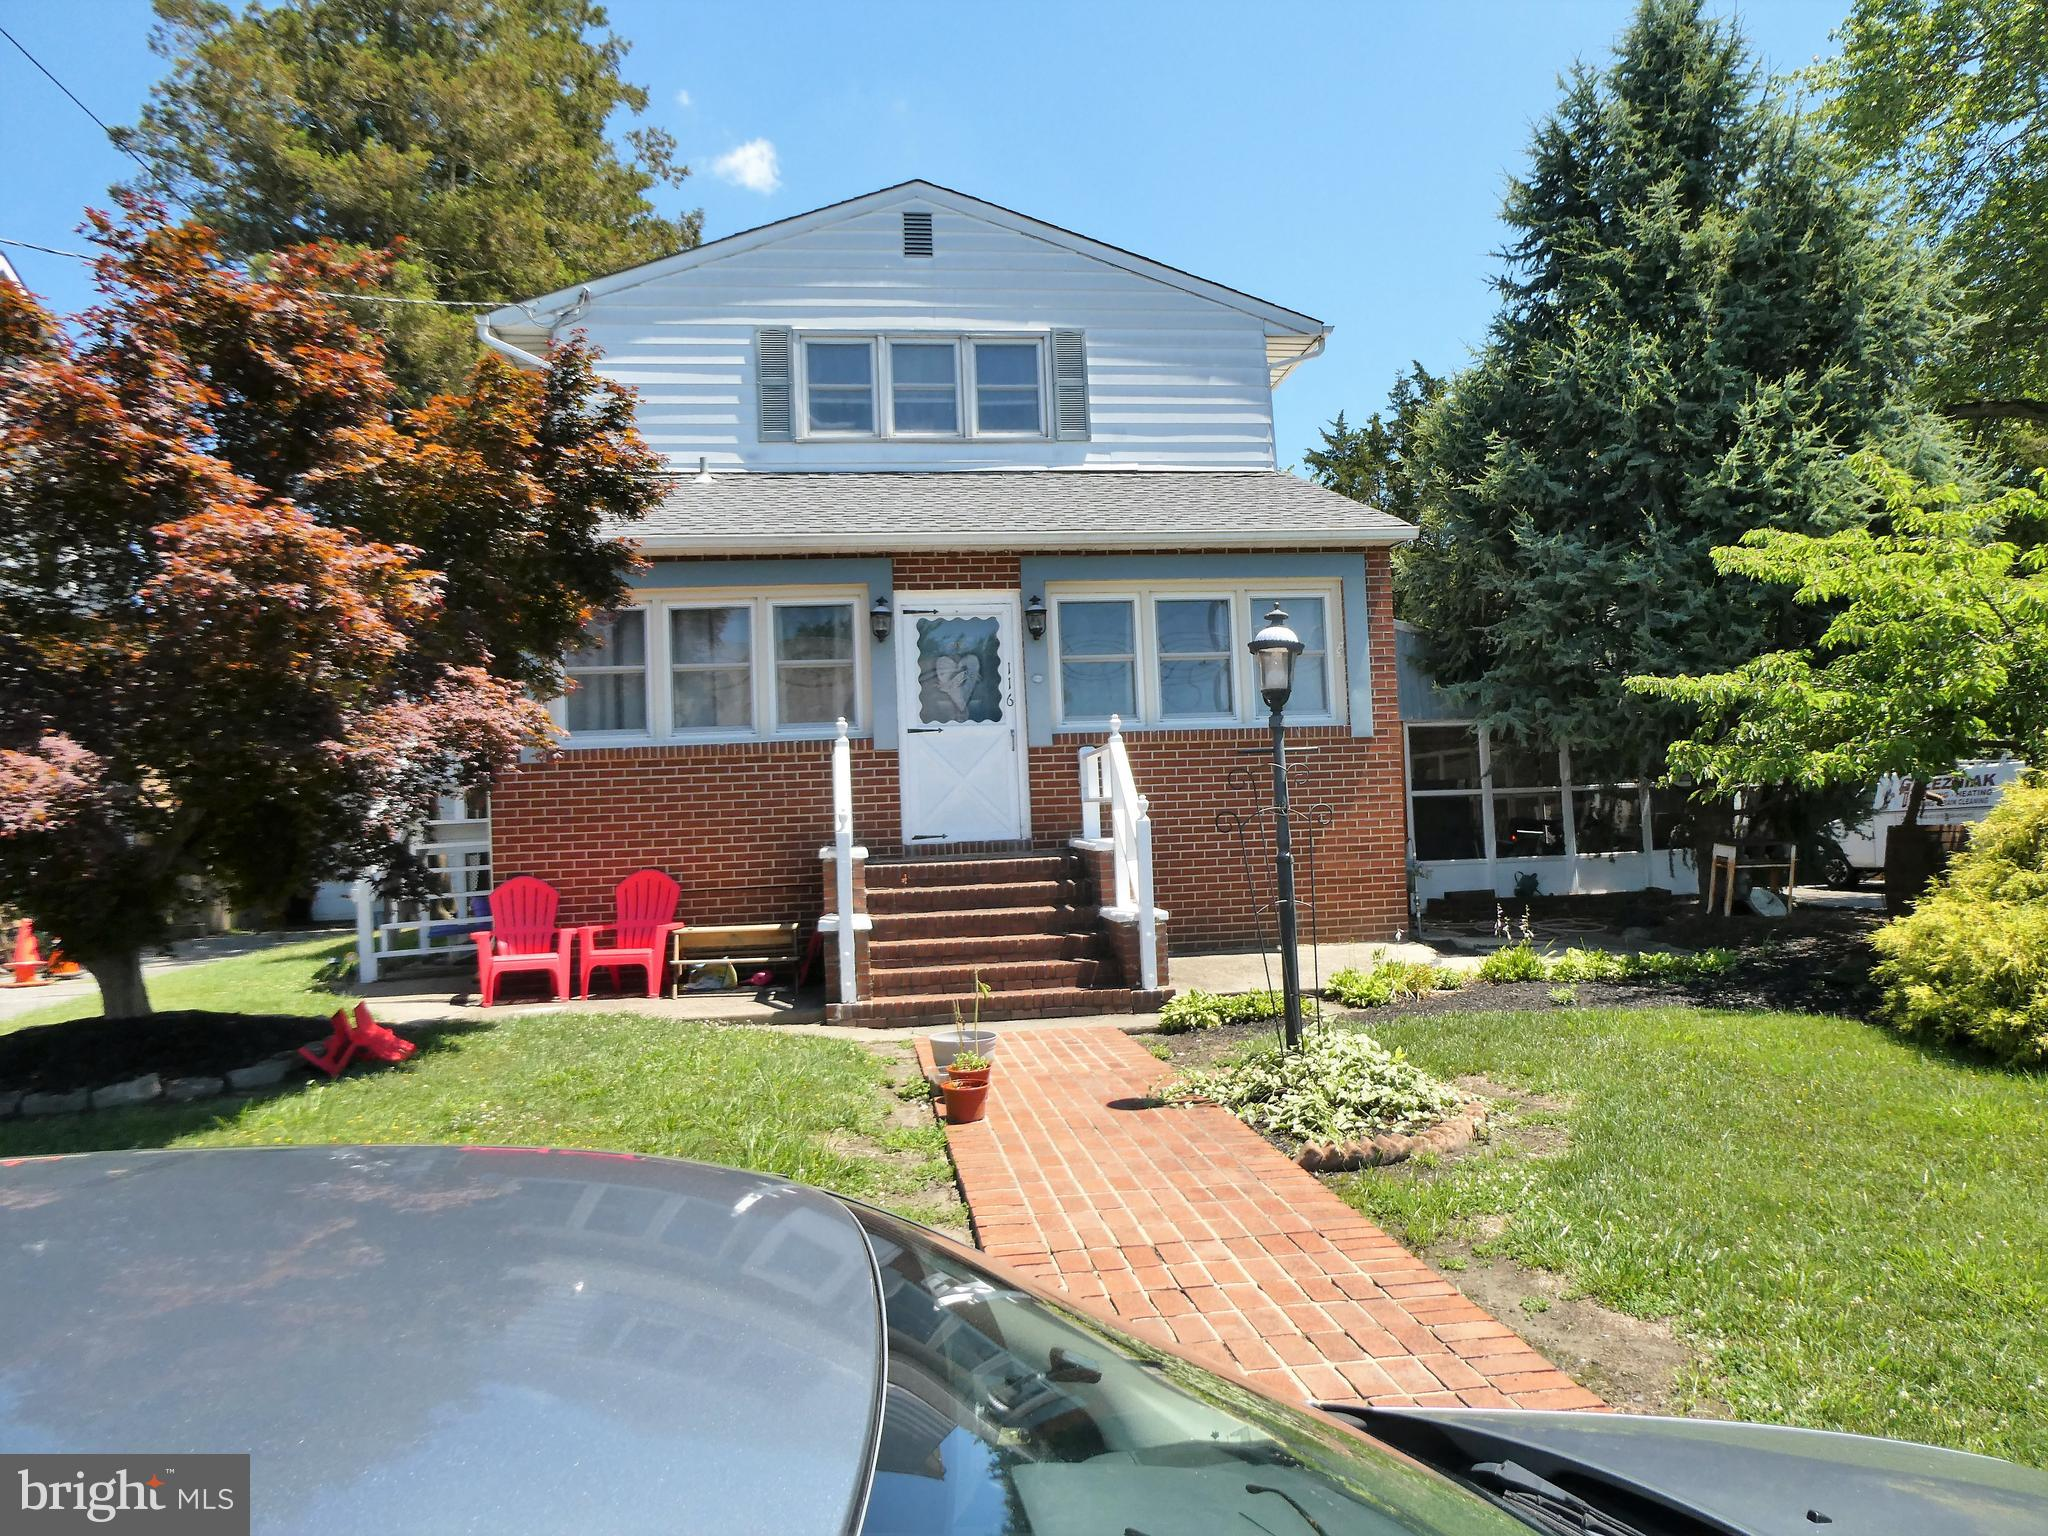 """Great Investment Property!!! Duplex with 4 car garage. (2) 1 bedroom units, Gas heat, Central air on 1st floor only. Public sewer and water, Huge yard 100x 300, Massive carport attached to 4 car garage. Garage is heated. Present income $33,600 yearly, rent garage for $6,000 yearly, Almost $40,000 yearly income. Large paved parking area, 1 block off White Horse Pike, Minutes from 295 and Philadelphia bridges, All income and expenses listed in documents. This duplex can easily be converted back to a single family home. This is an """"Estate  Sale"""". Seller will not be responsible  for any repairs or certifications, Buyer responsible for everything."""